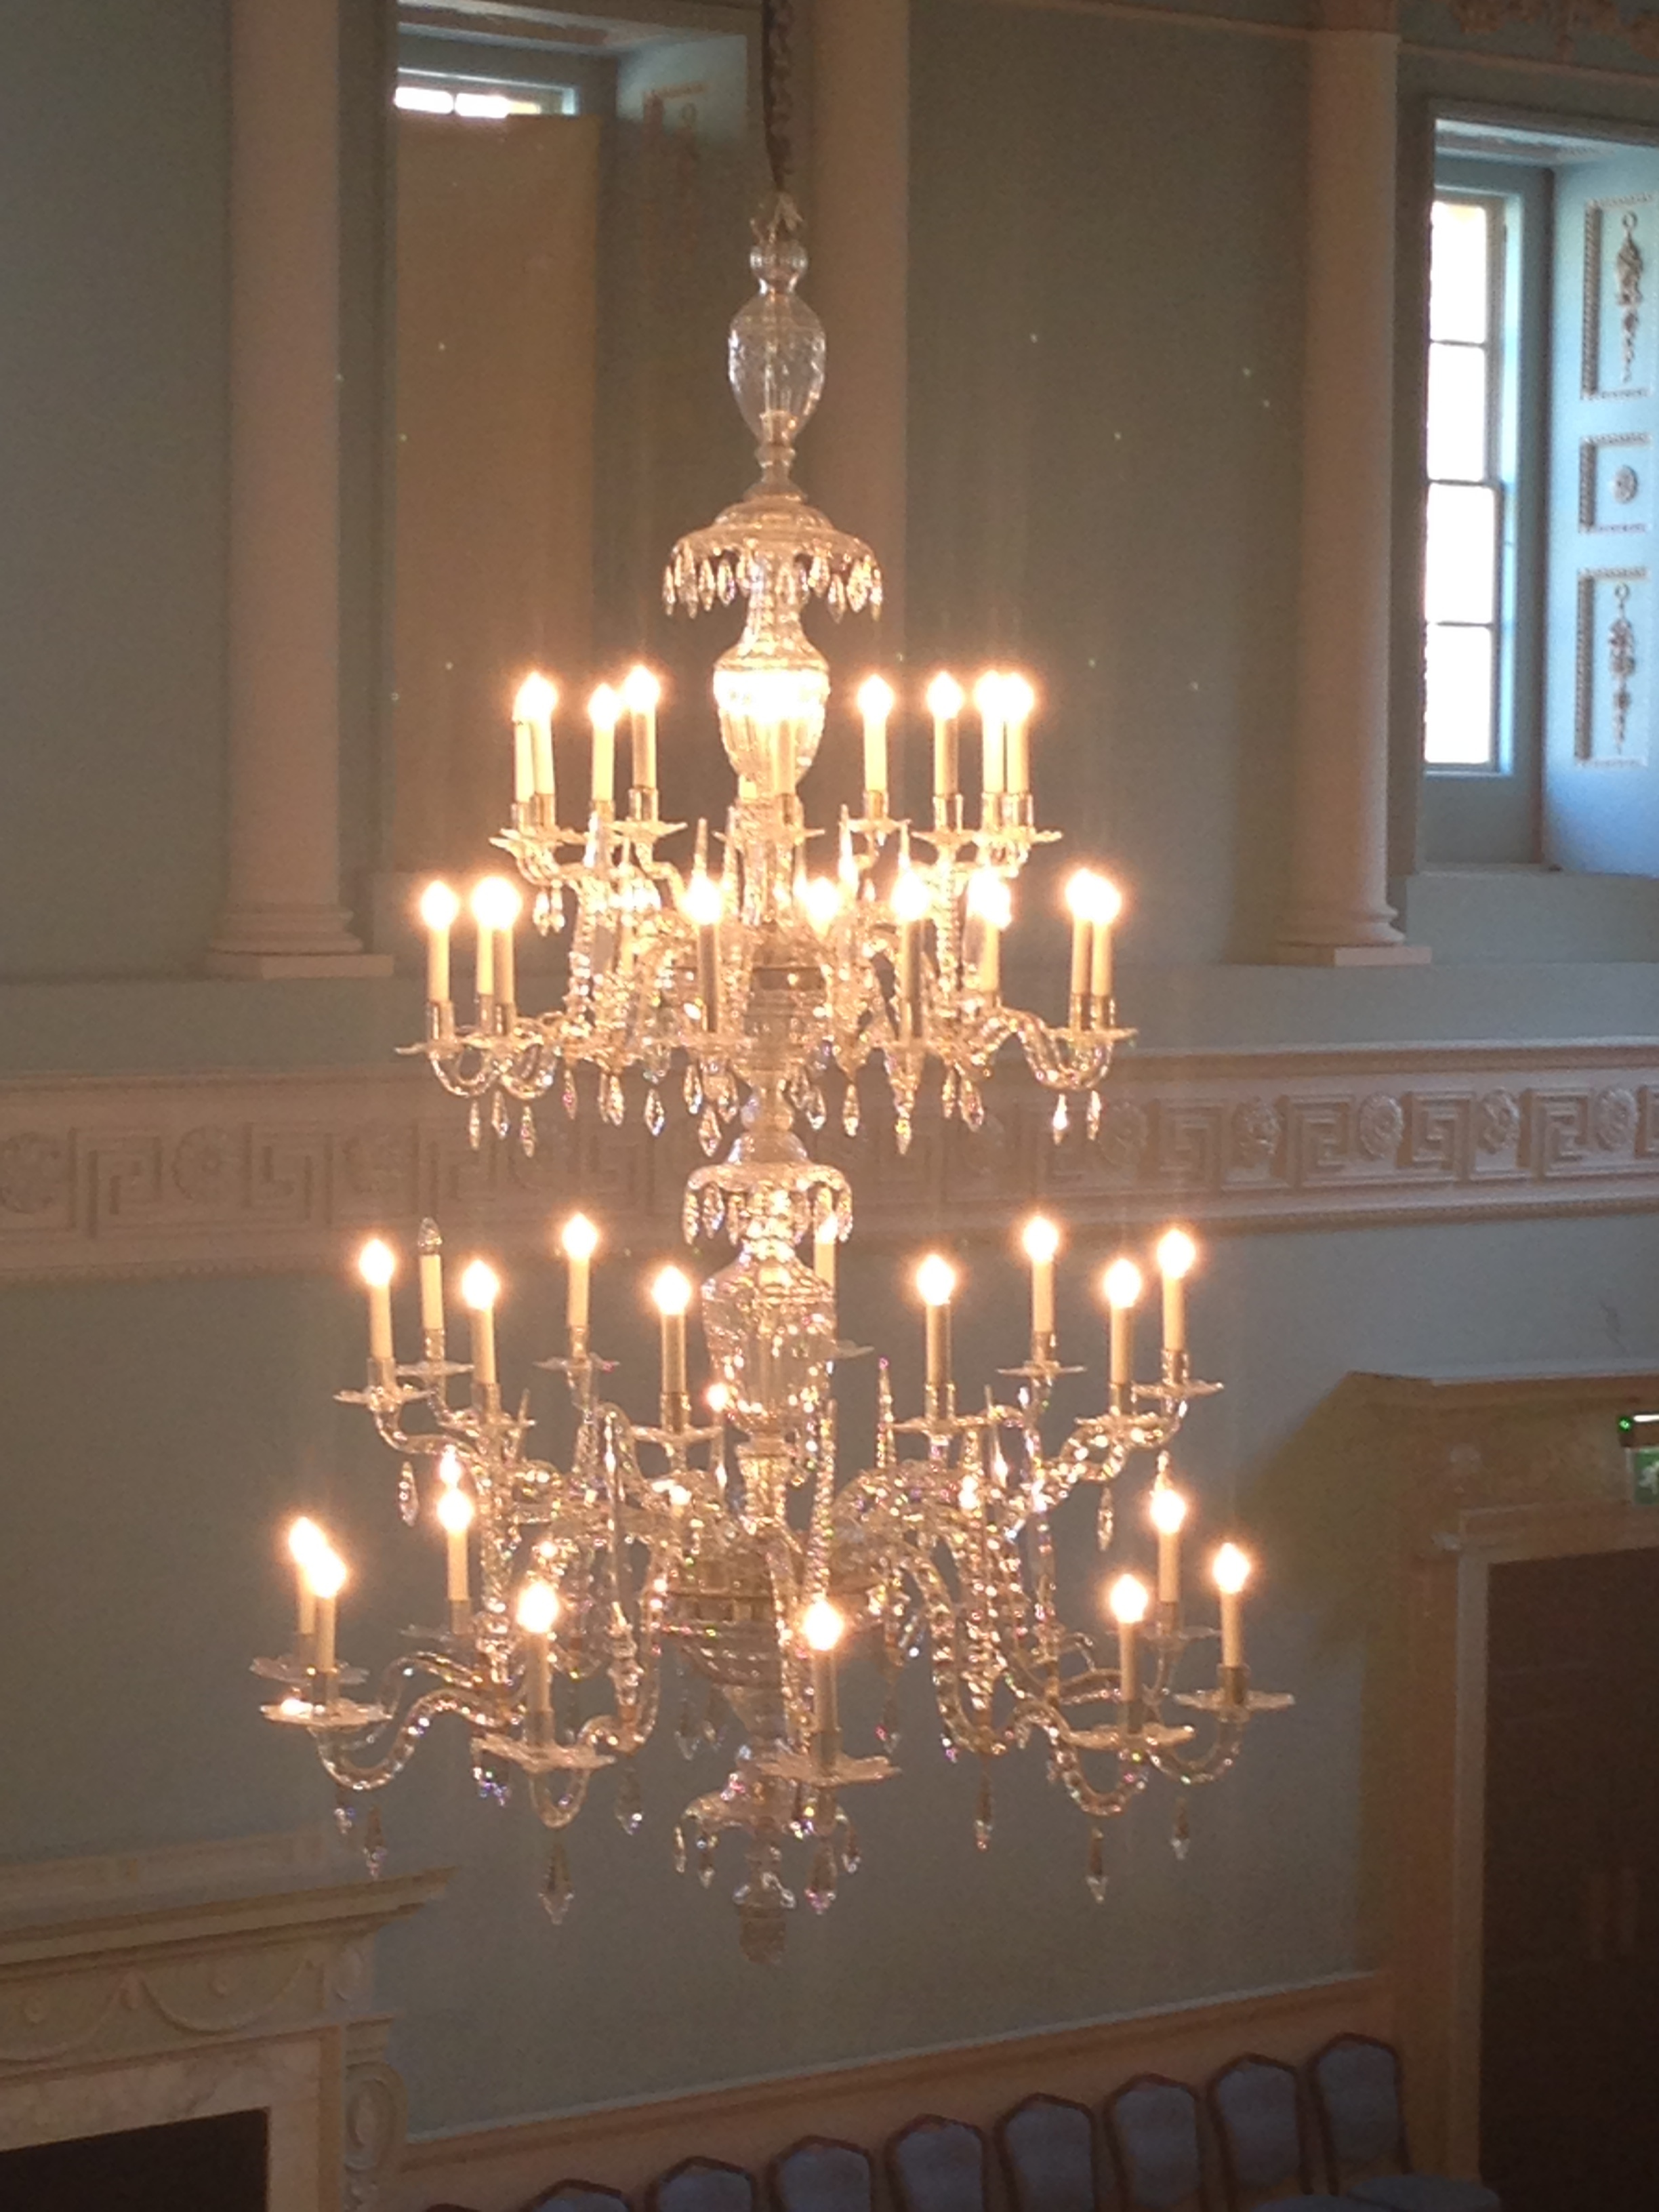 Close-up of one of the chandeliers.